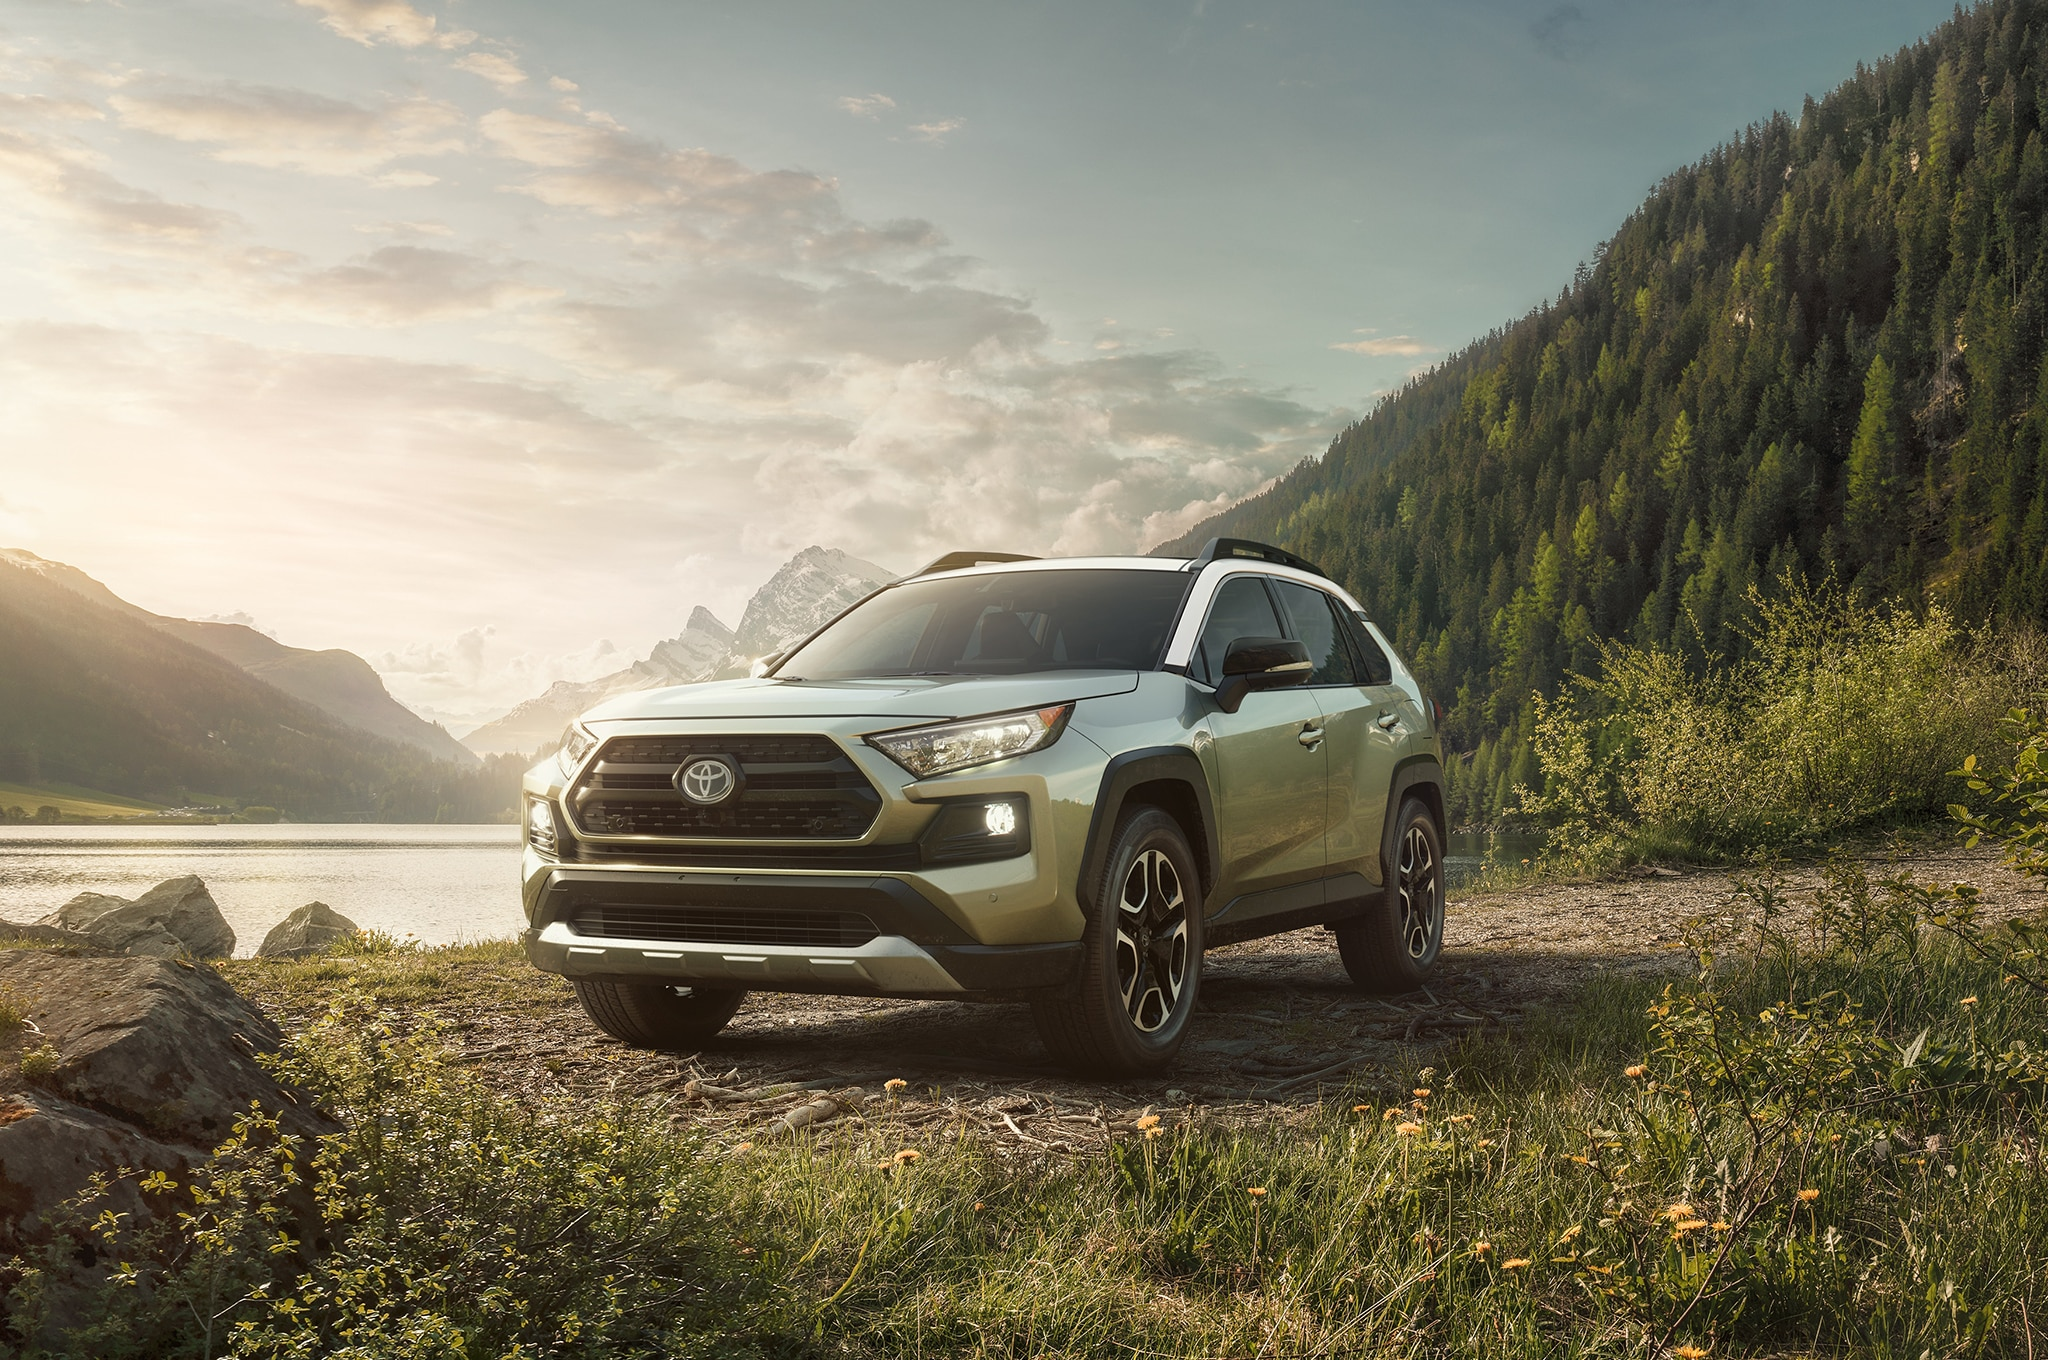 Toyota's popular RAV4 to get its first overhaul since 2013